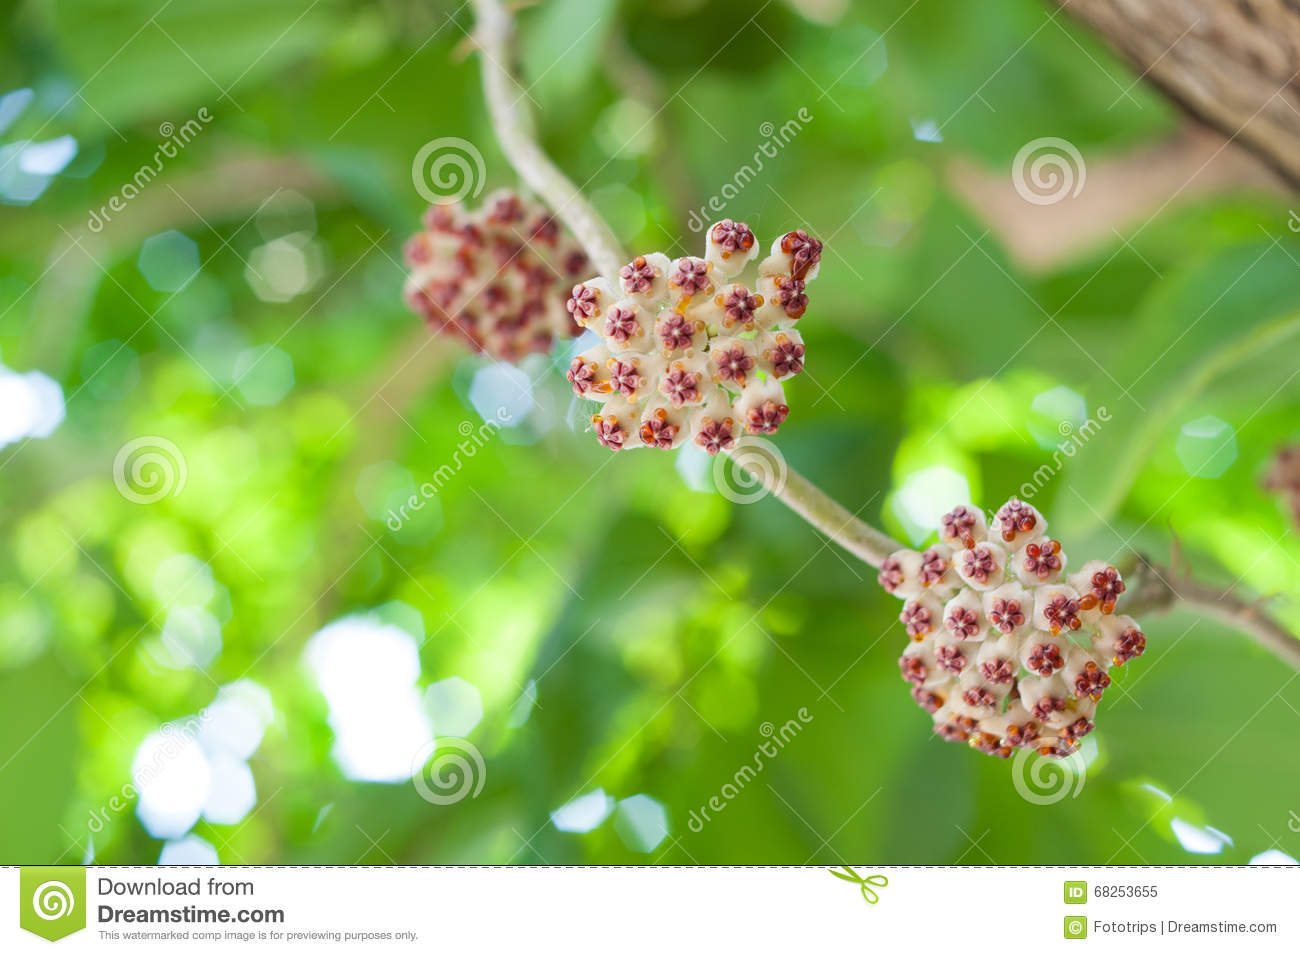 Hoya, Wax plant flower